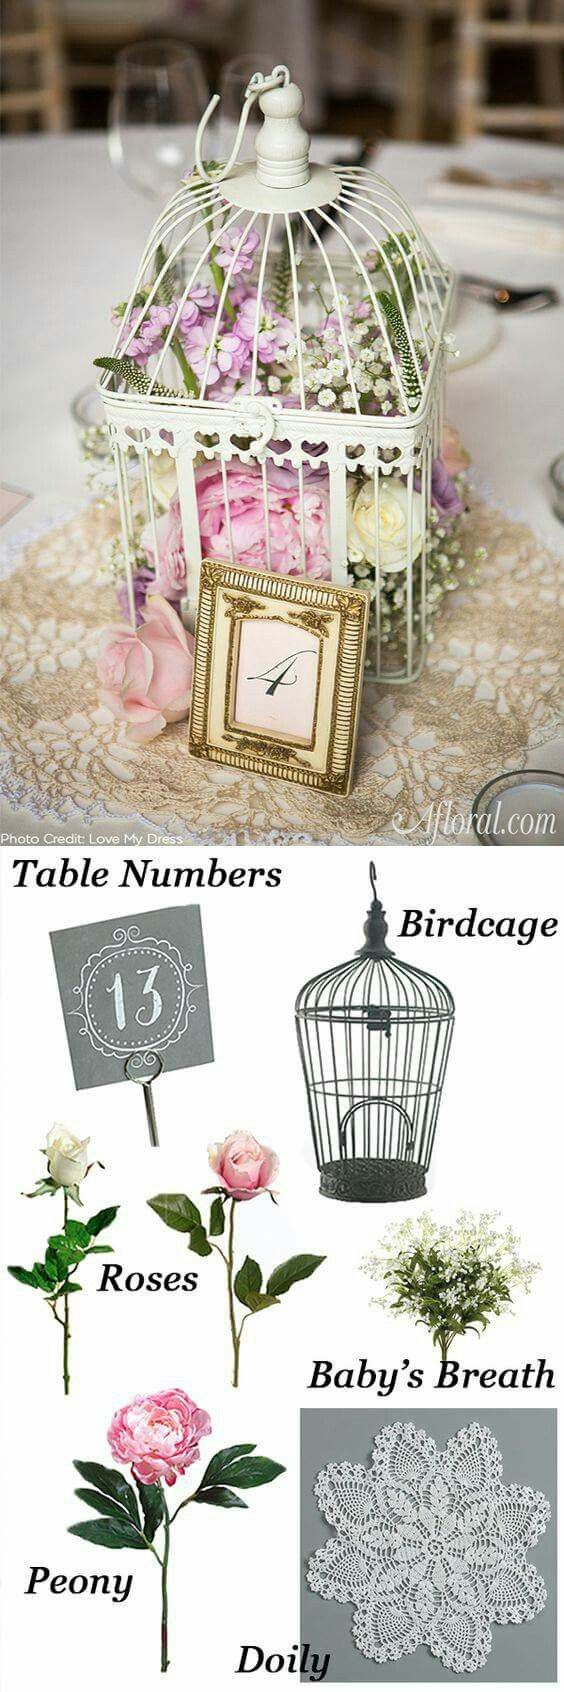 9 best table decorations images on Pinterest | Decorating ideas ...